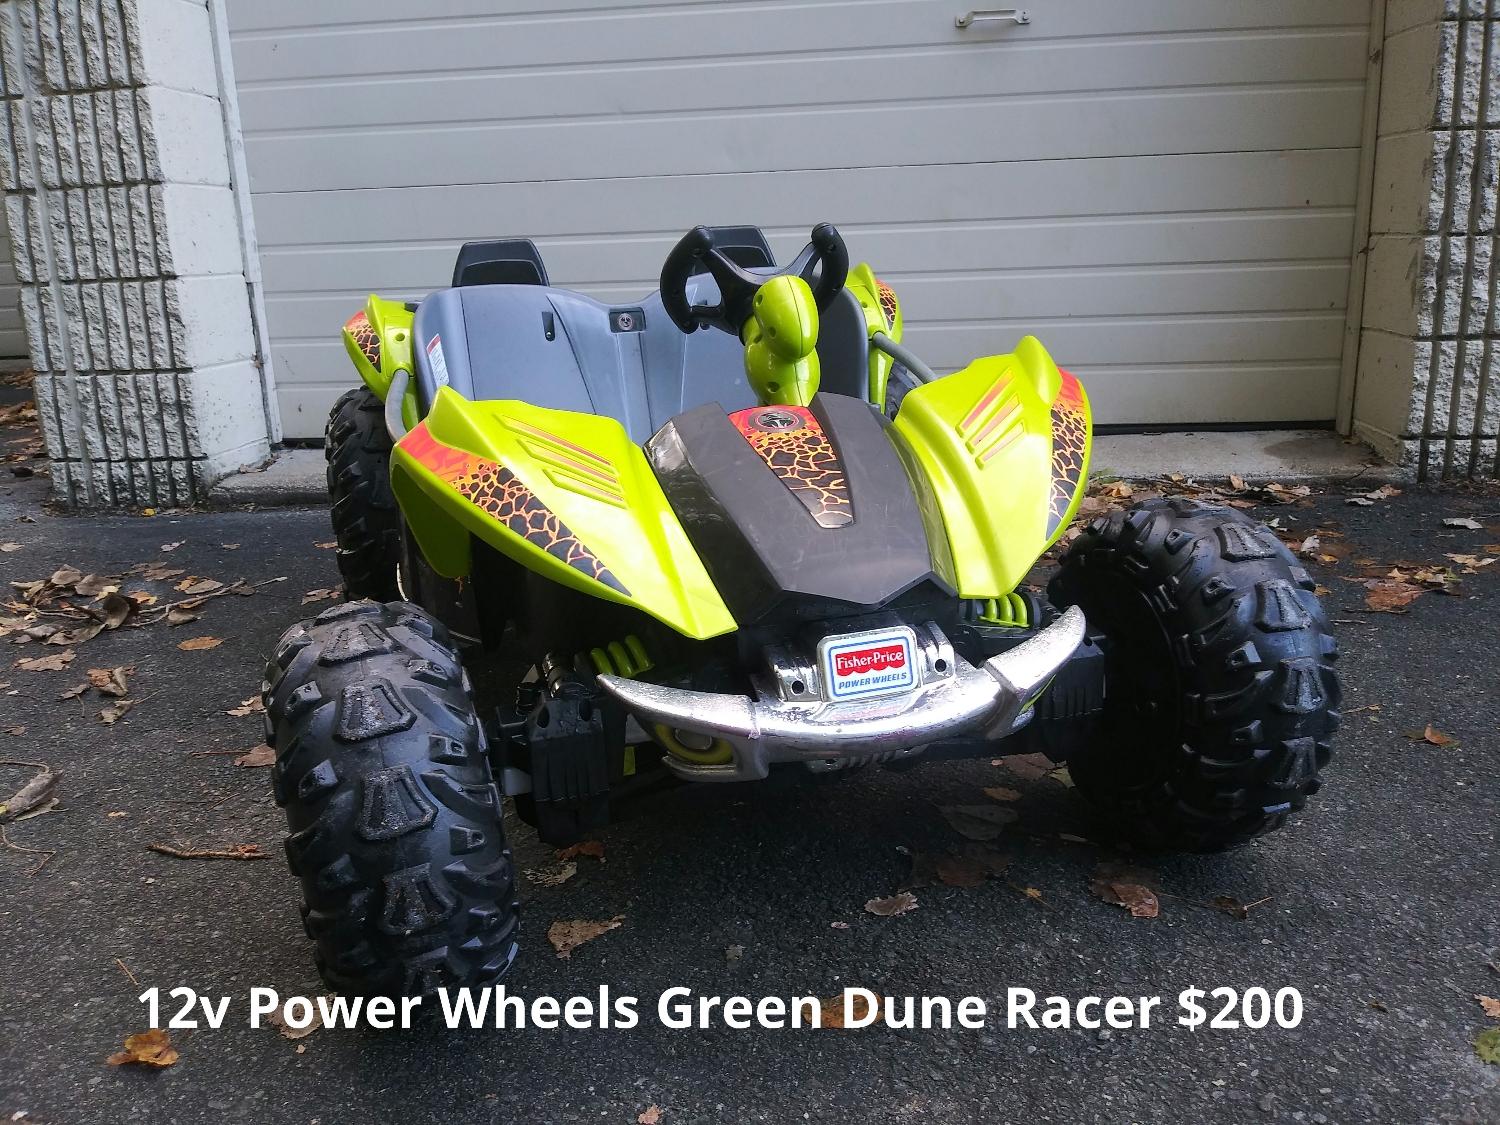 12v Green Power Wheels Dune Racer